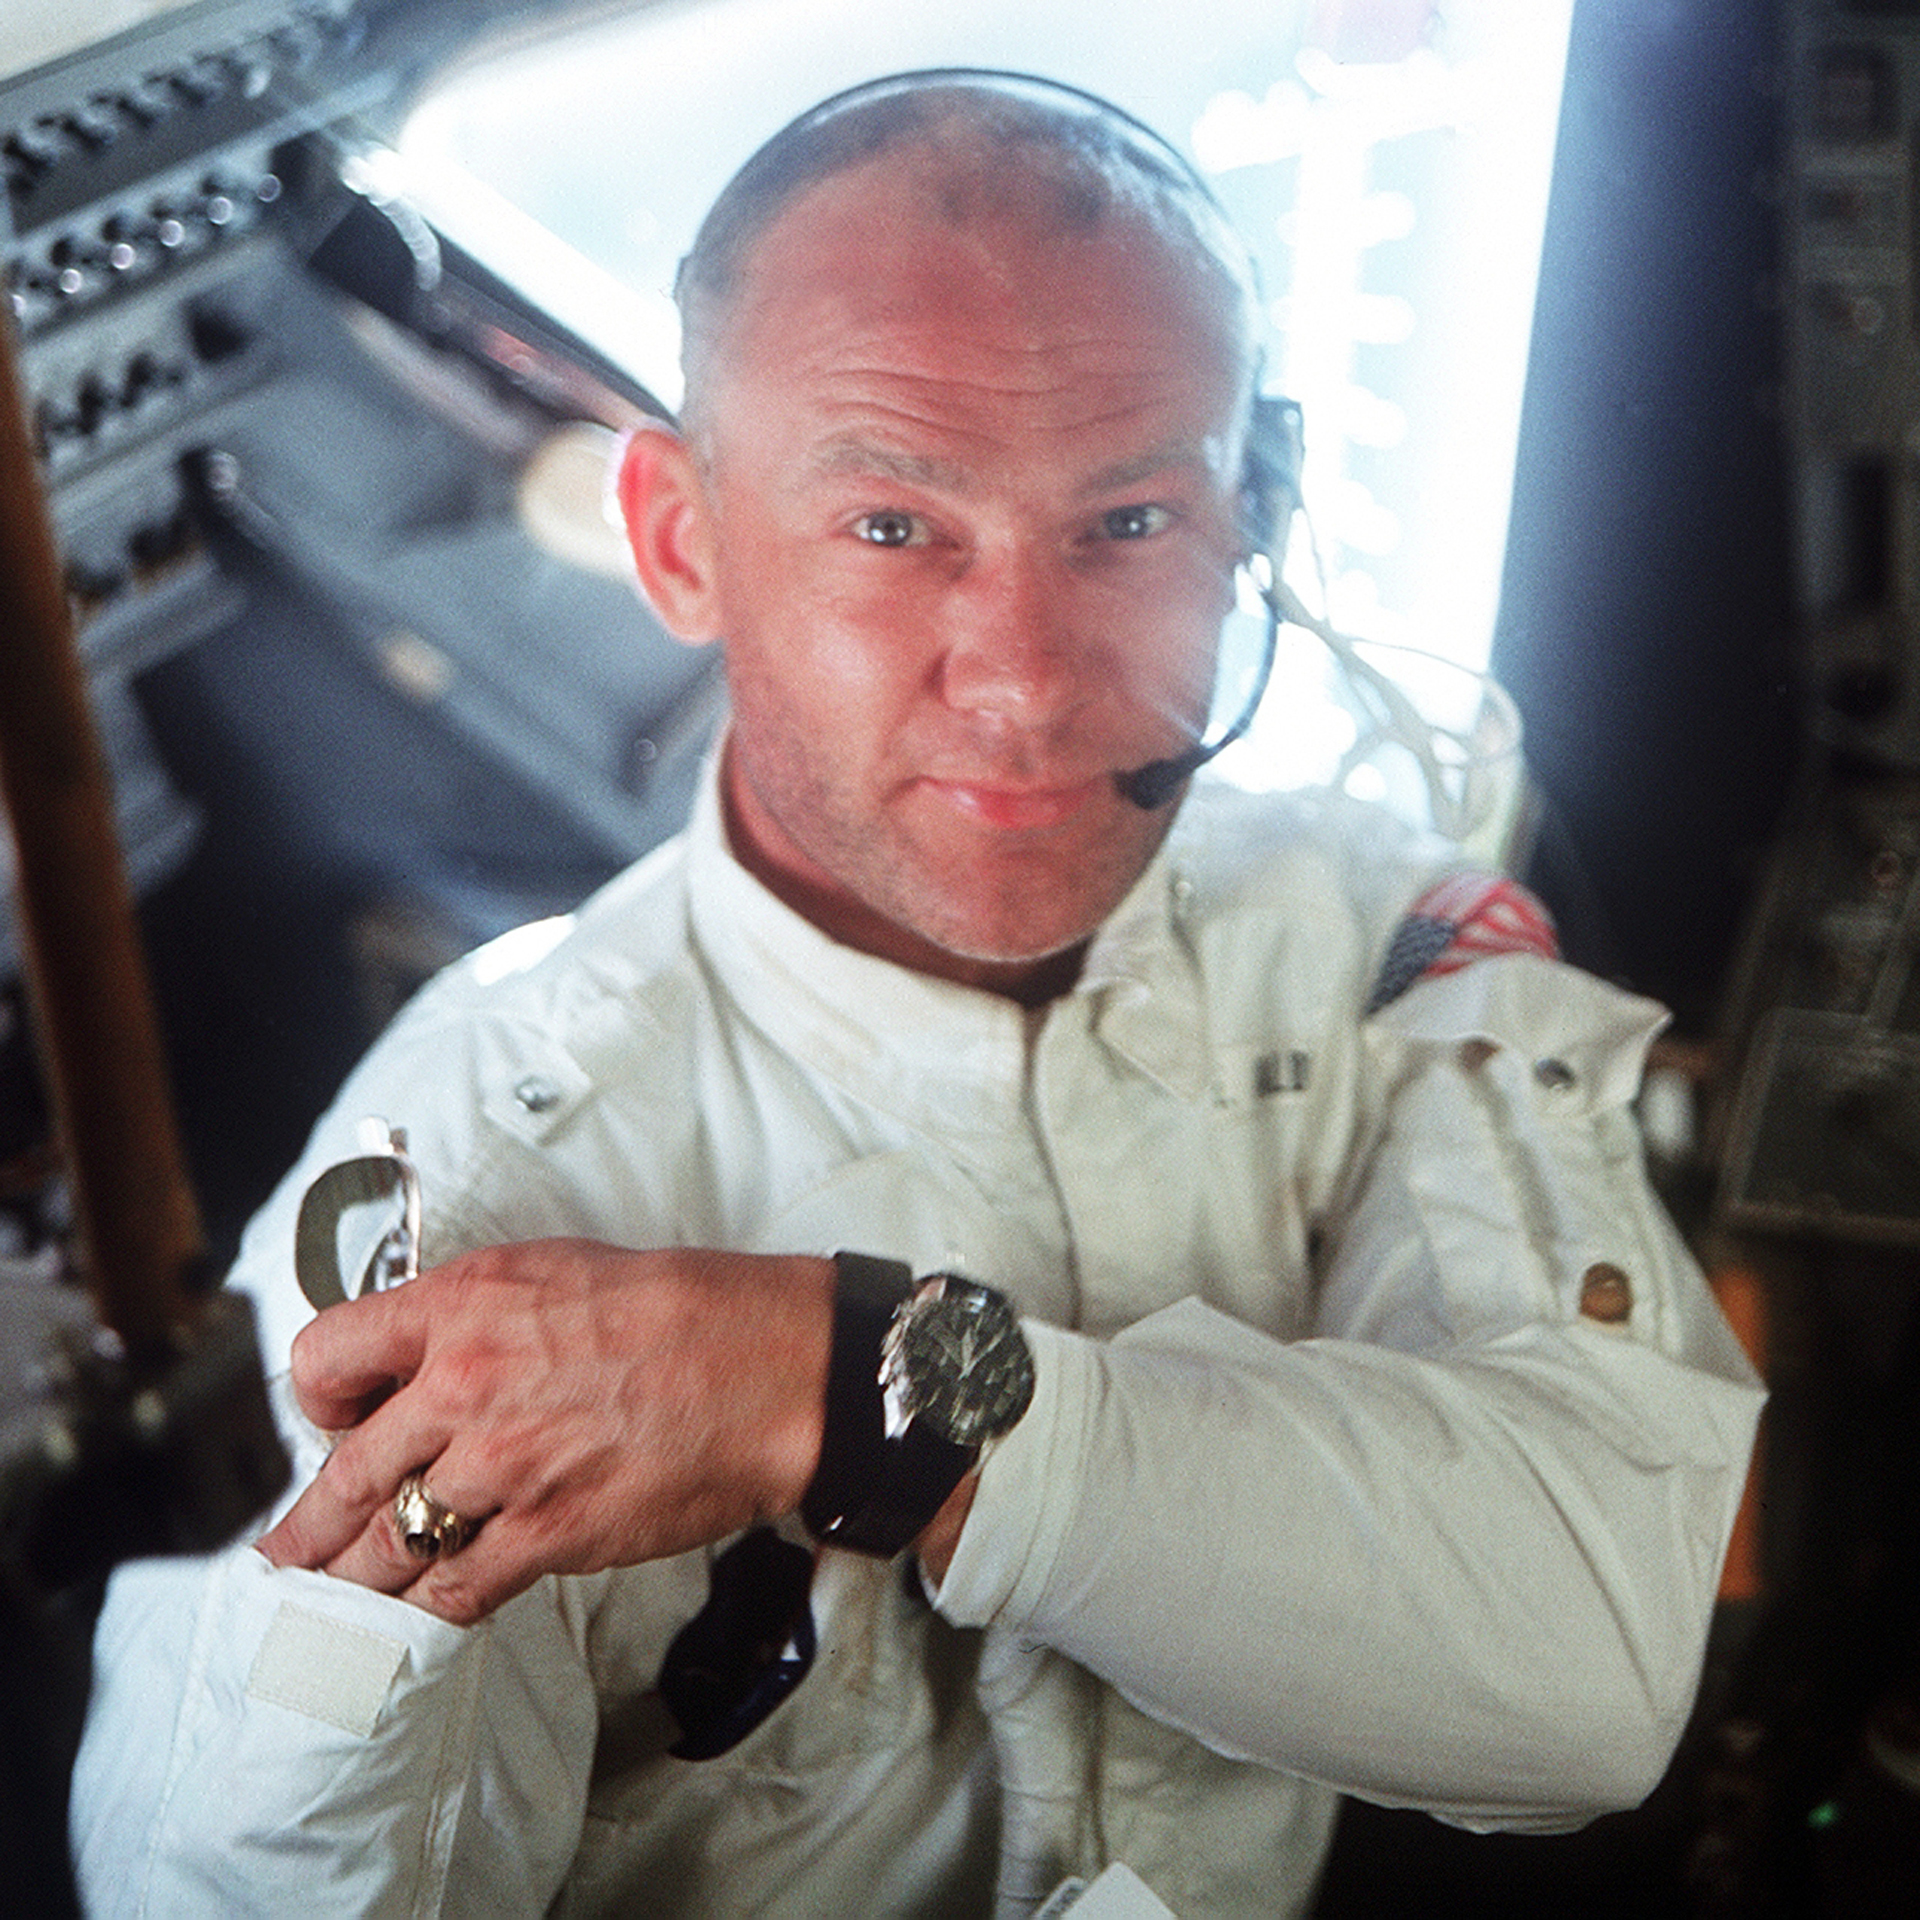 Westlake Legal Group buzz-aldrin-moon-business 50 years later, the Moon is still great for business fox-news/science/air-and-space/moon fnc/science fnc c8648e49-5b63-5a12-92c0-1e57303a716b Associated Press article